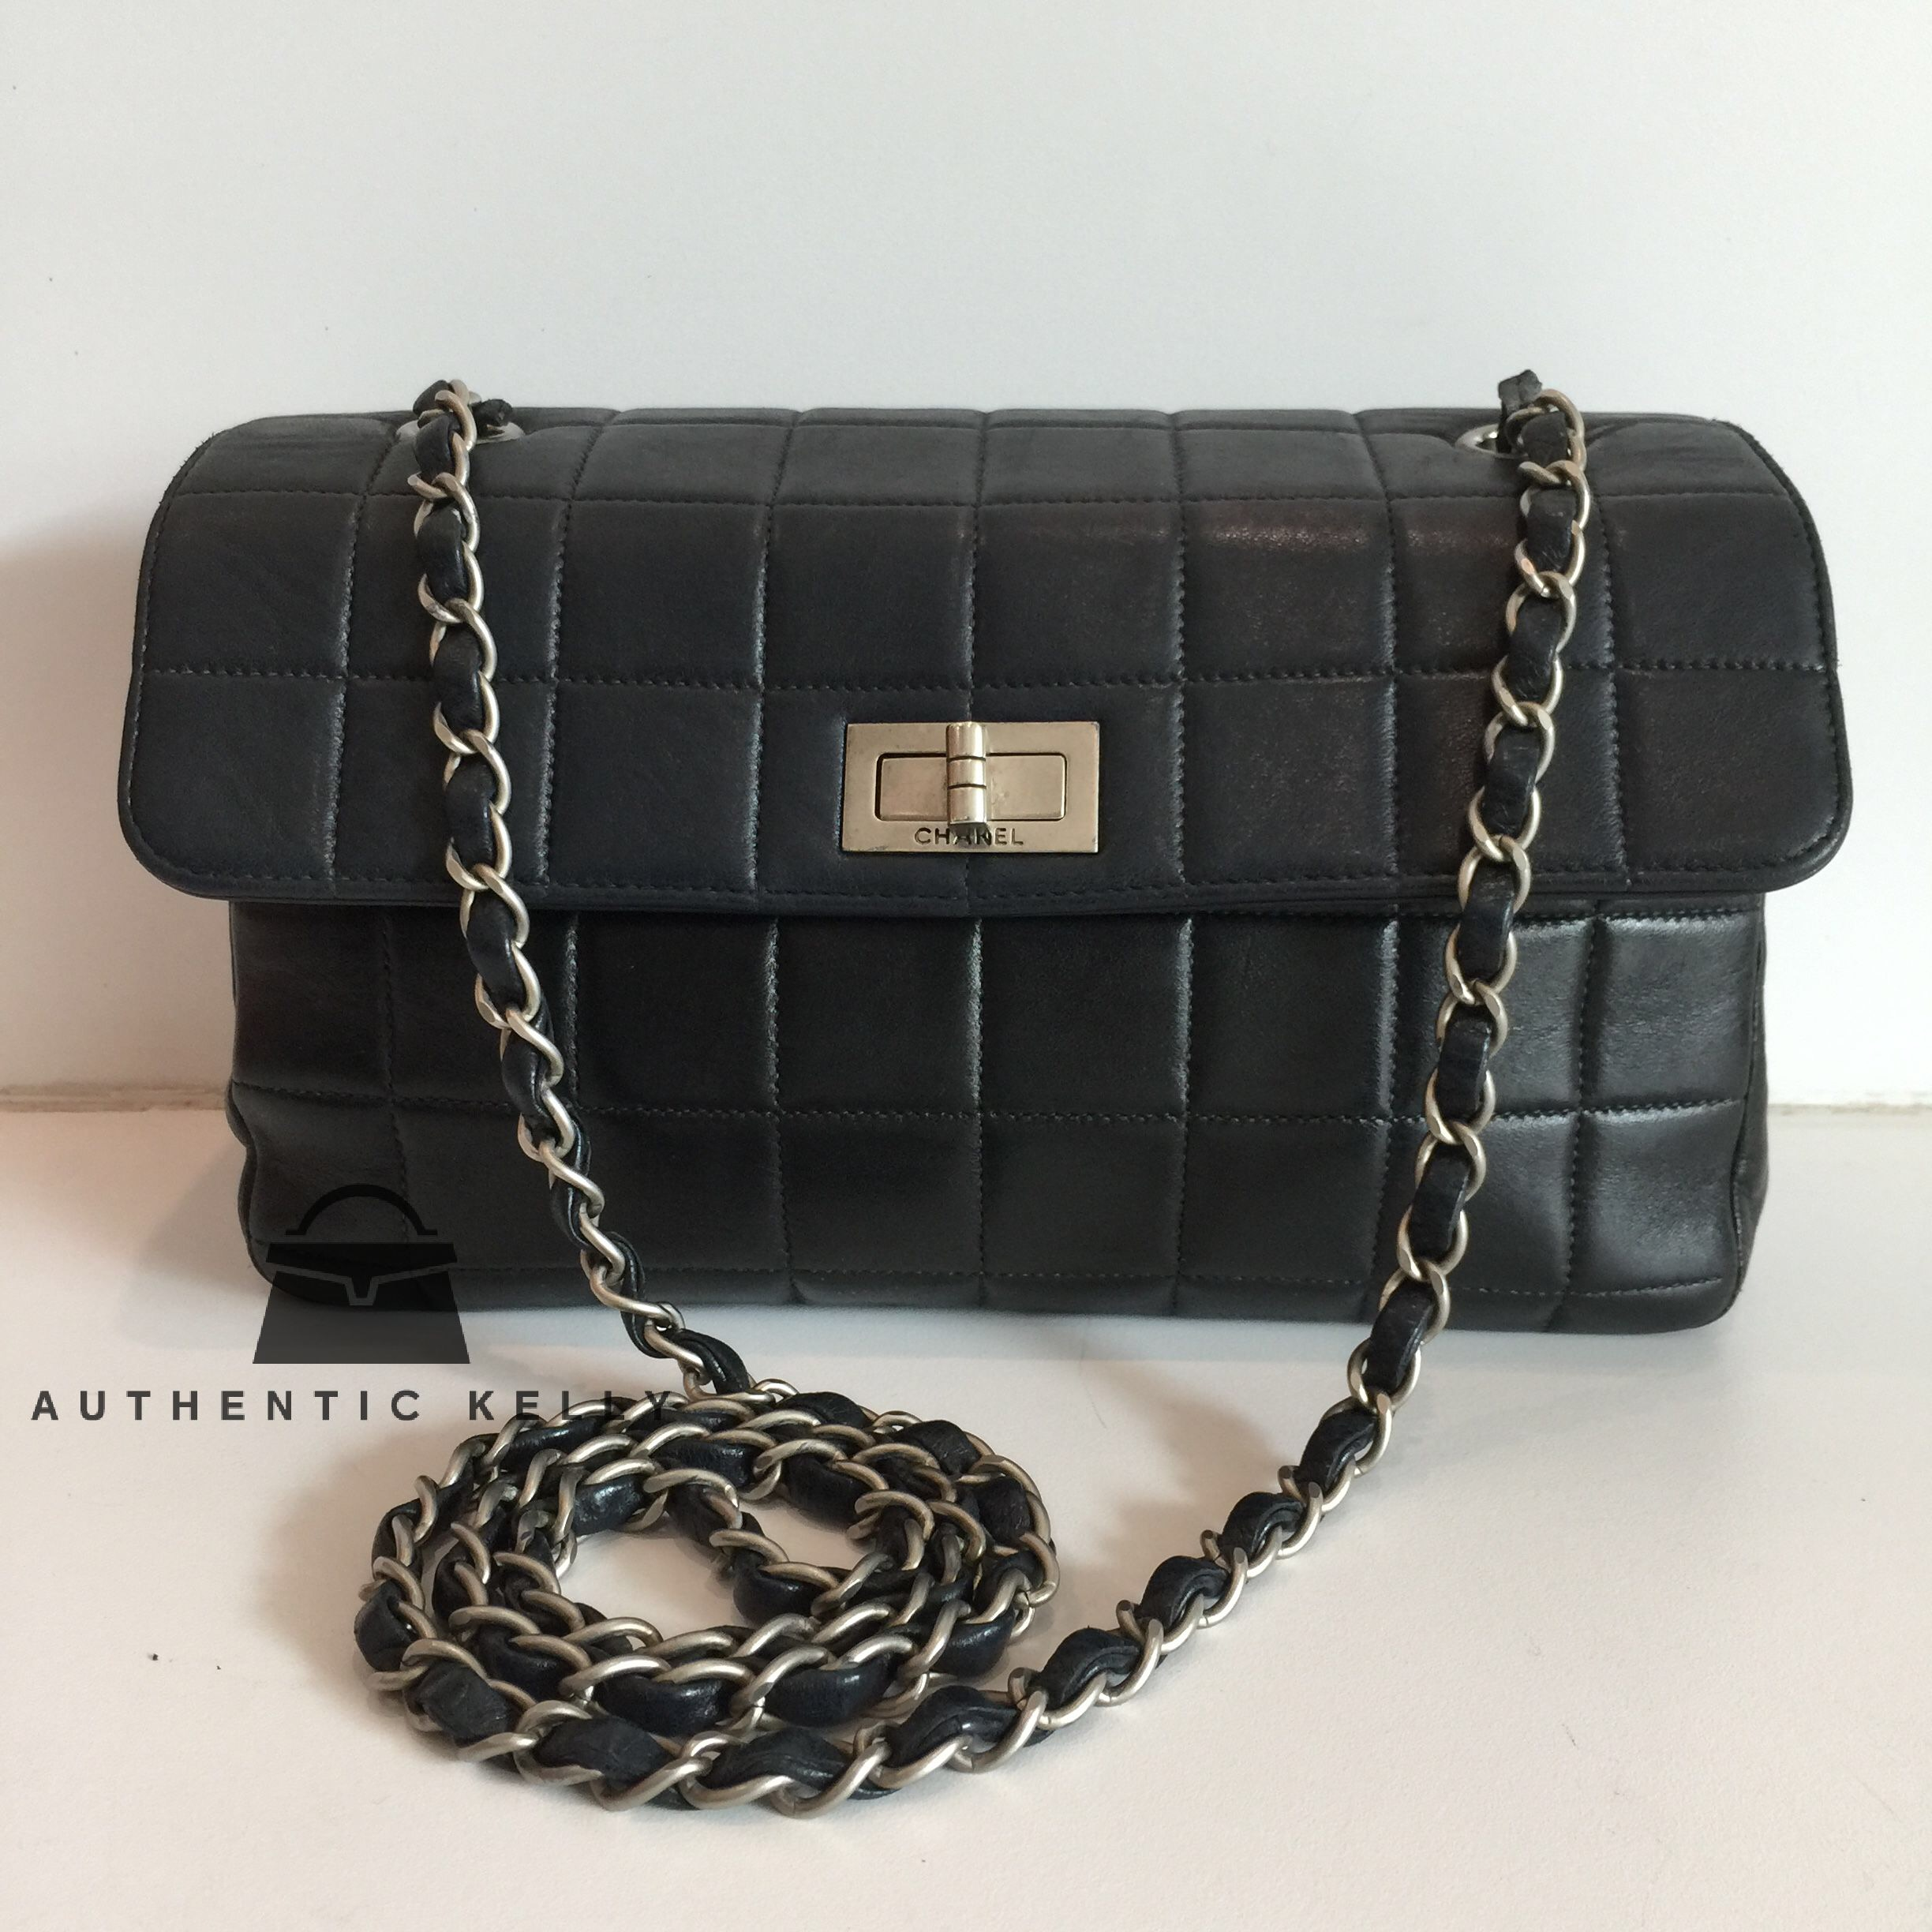 da8bb8d9956e CHANEL 2.55 Reissue Chocolate Bar Stitch Pattern Black Lambskin Crossbody  Bag – AuthenticKelly